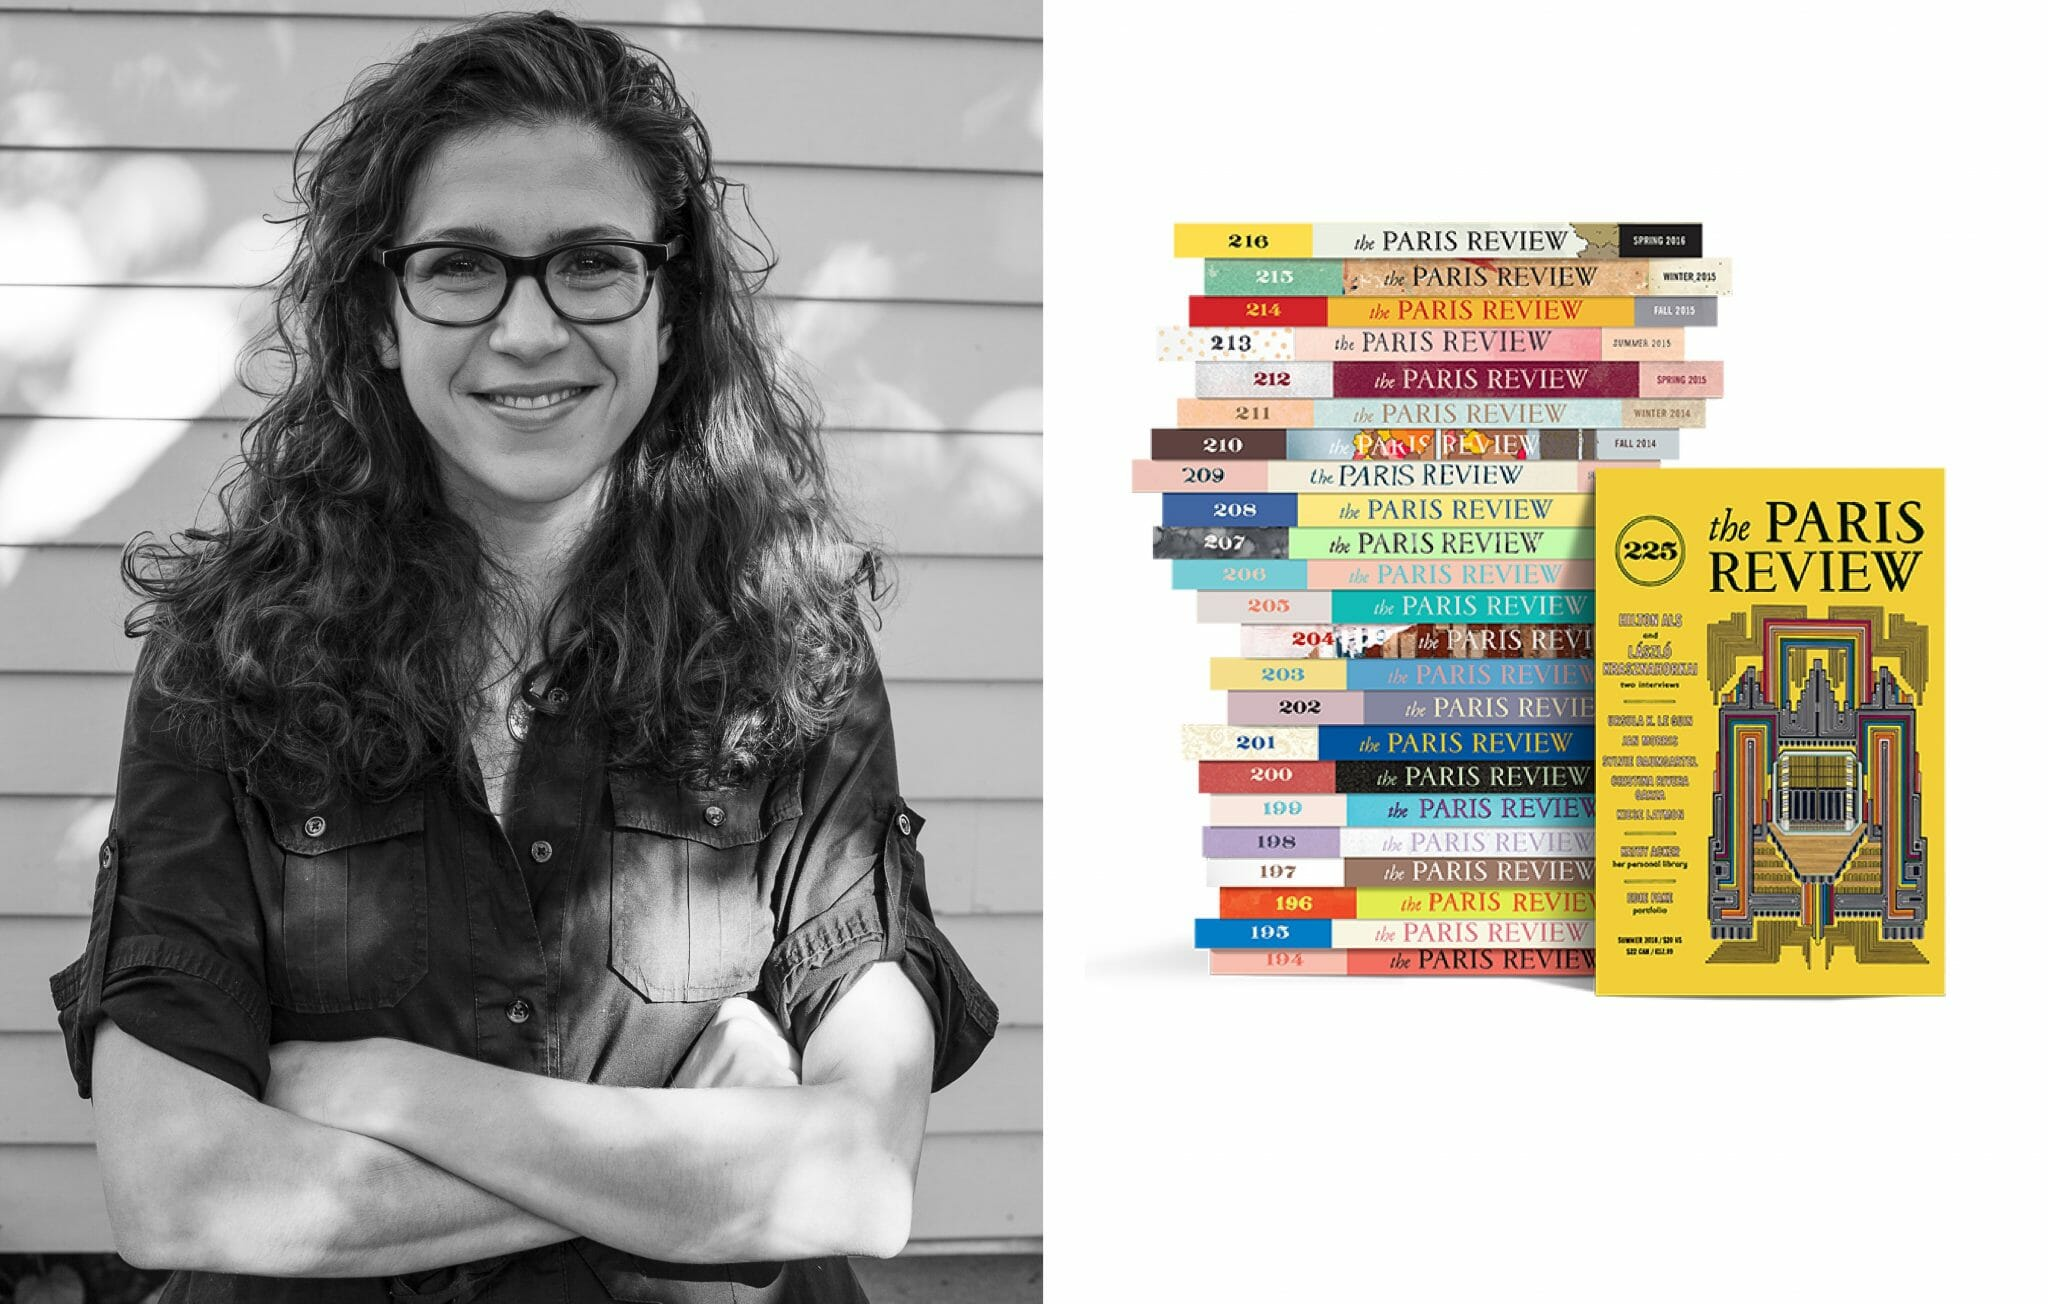 Nemens - The Paris Review